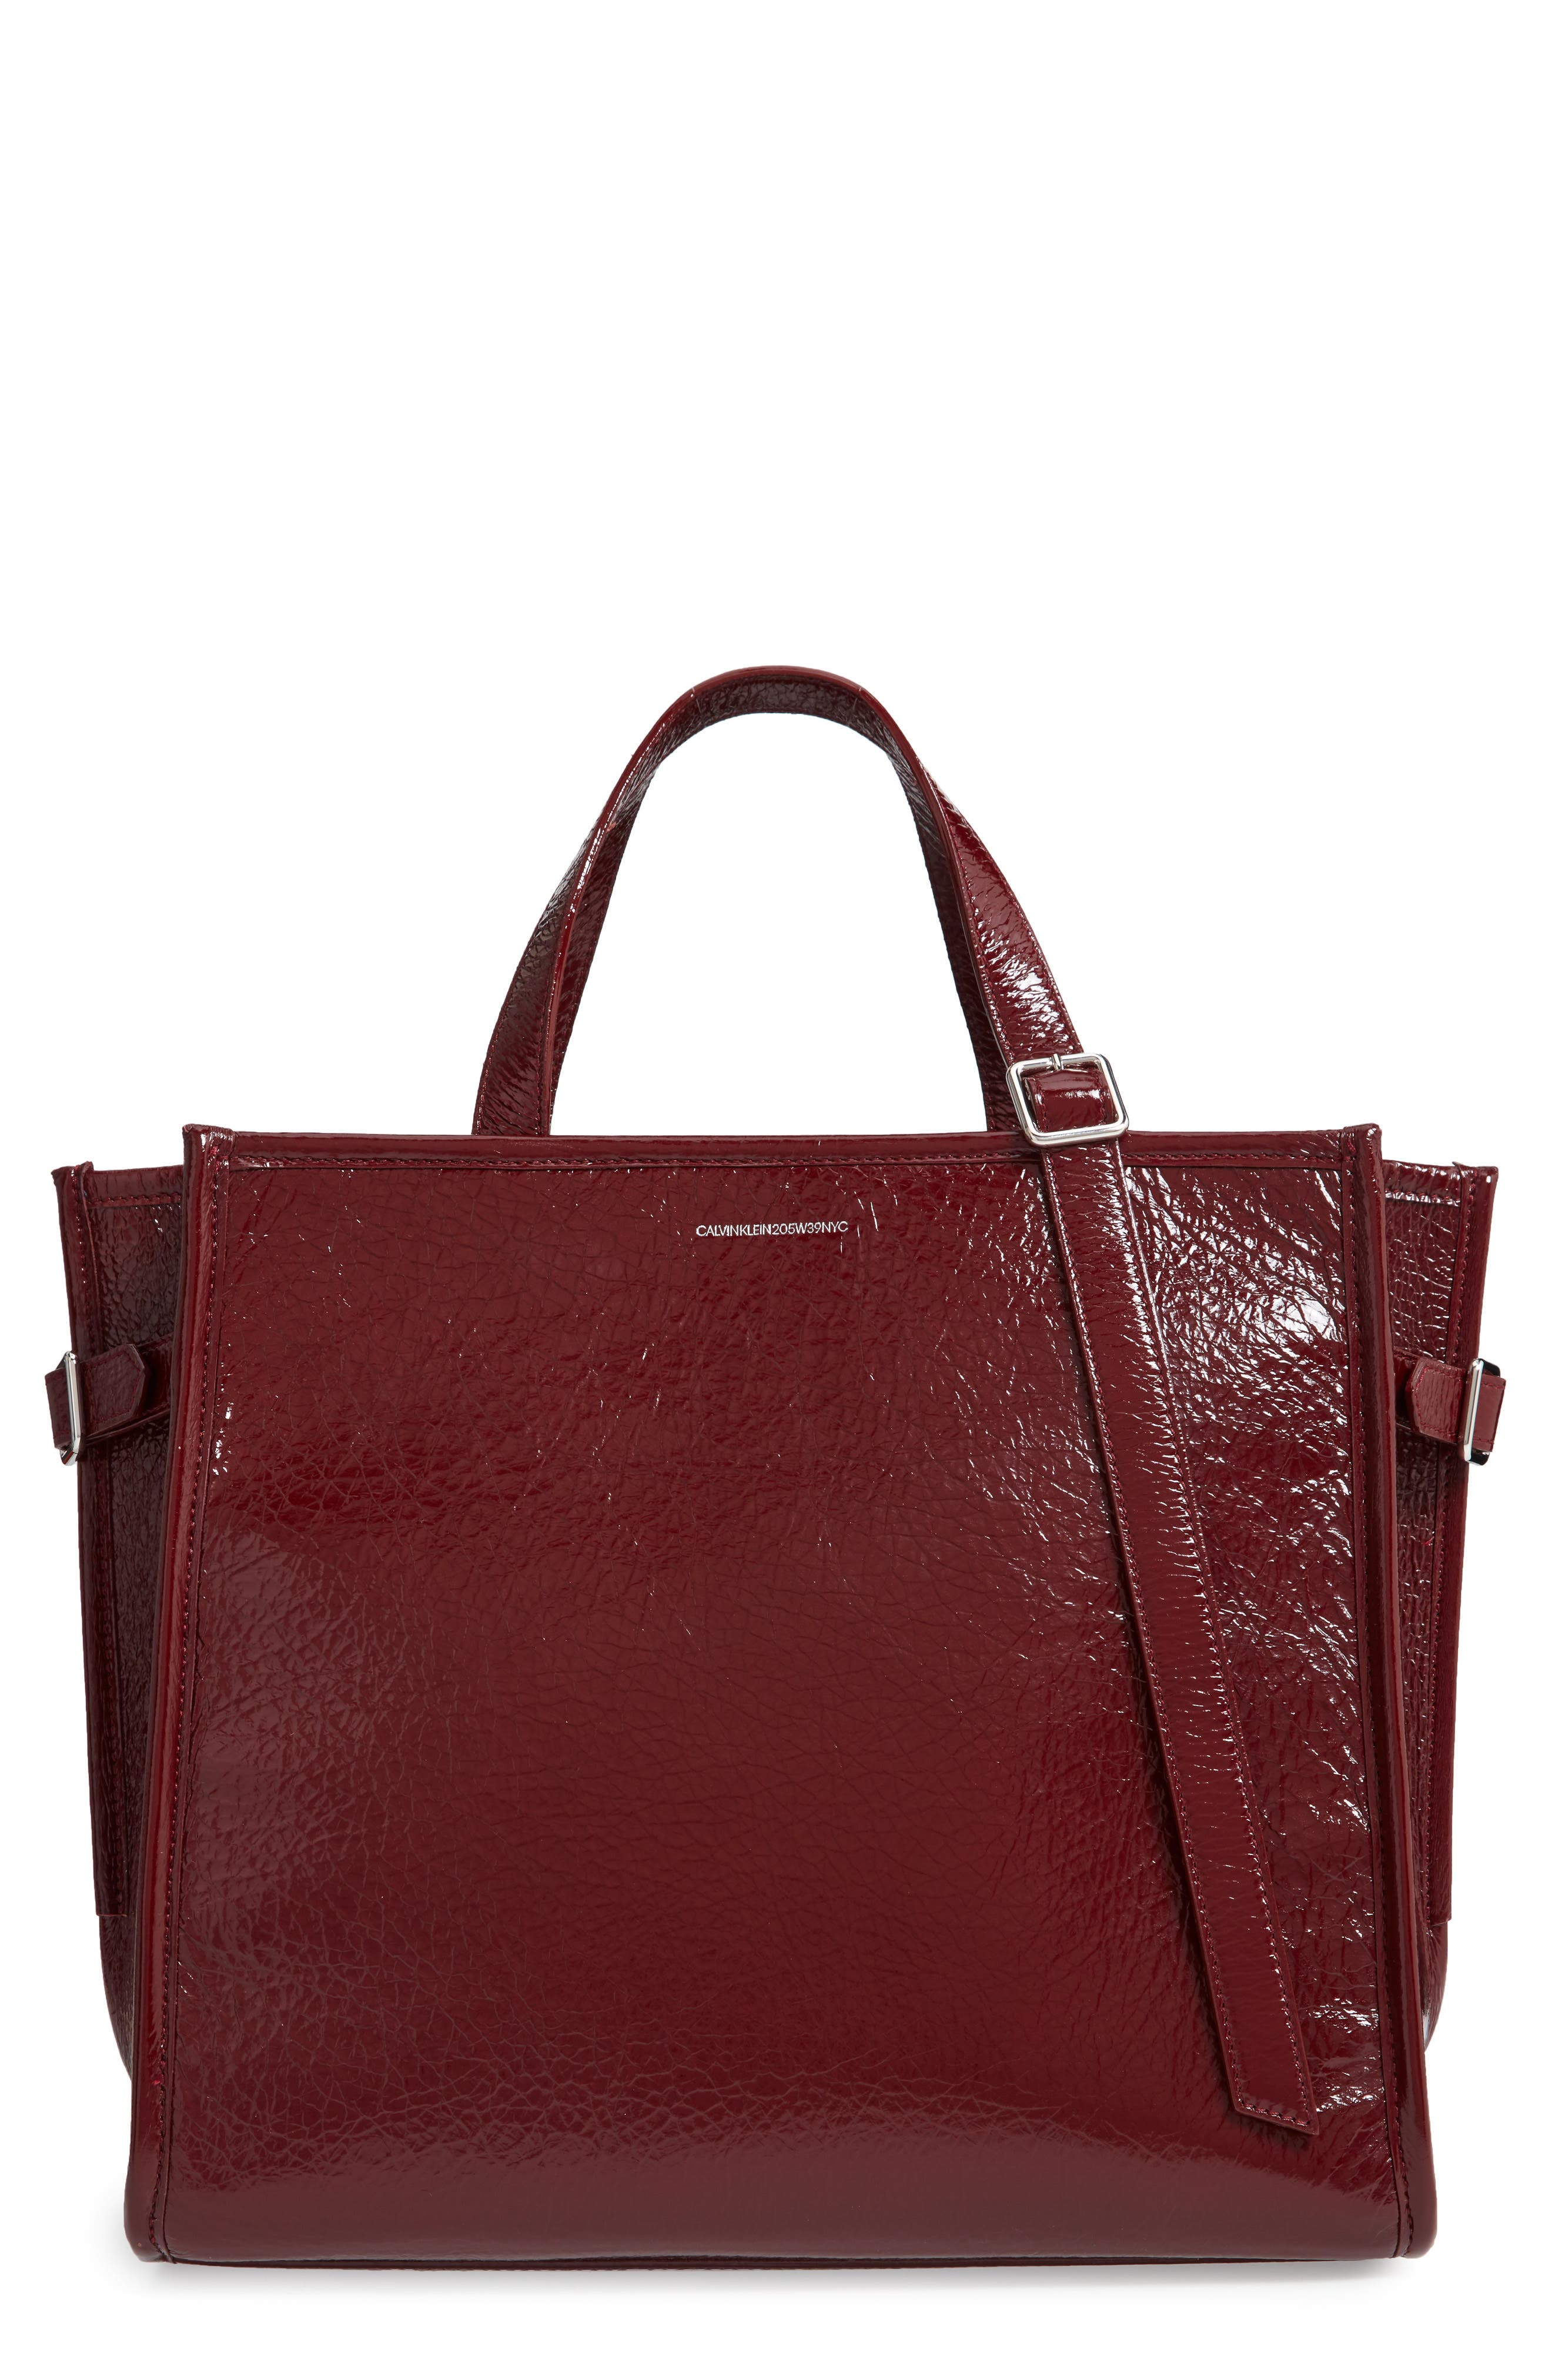 CALVIN KLEIN 209W39NYC East/West Leather Tote,                         Main,                         color, DARK BURGUNDY